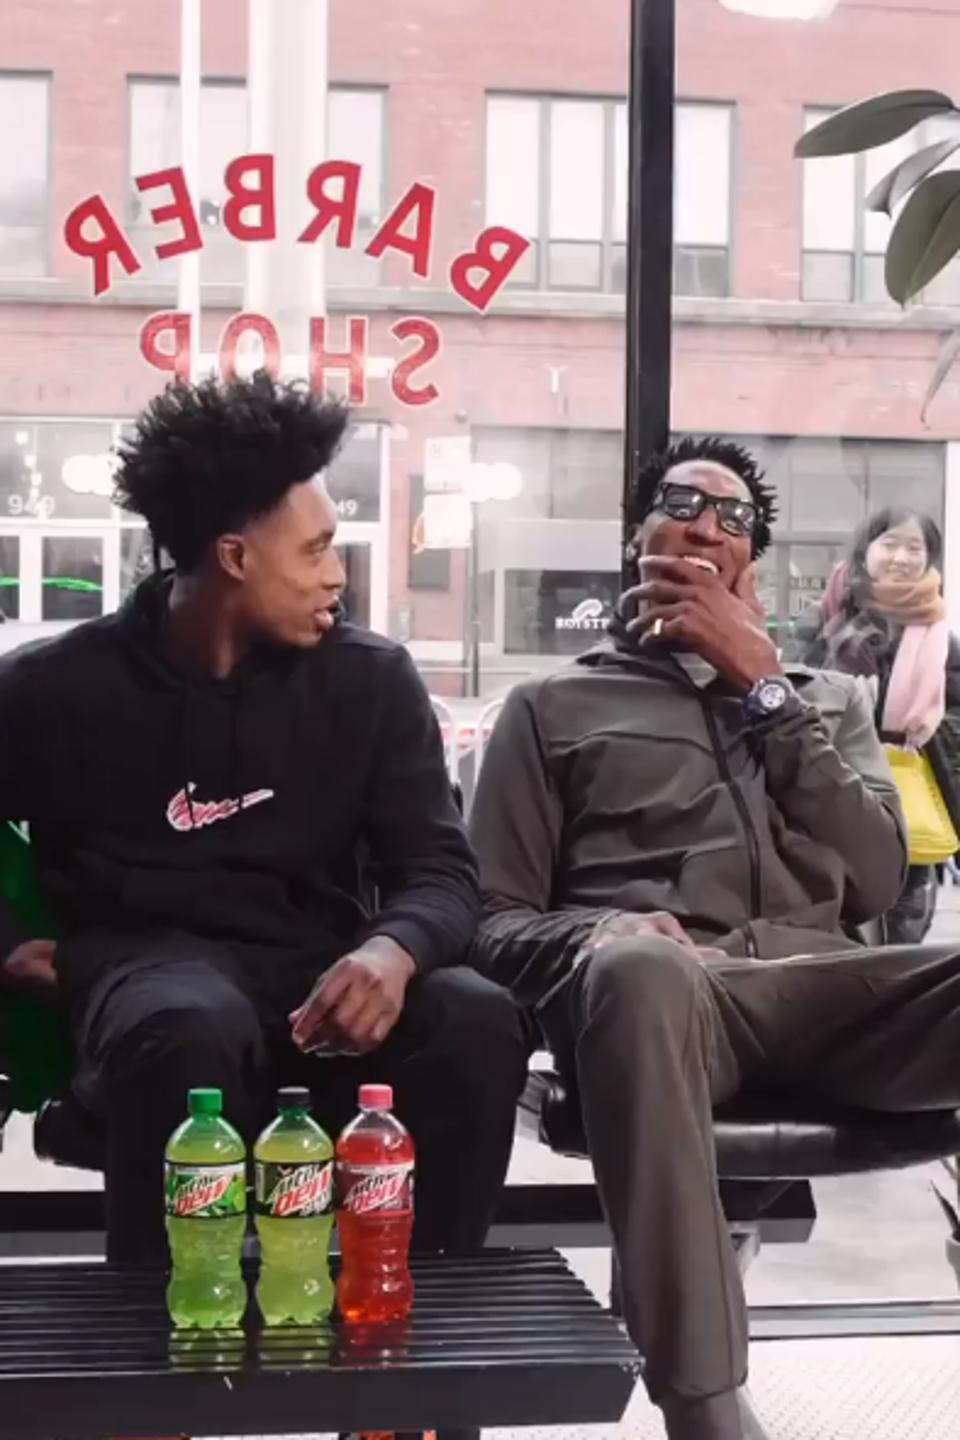 Collin Sexton chats with Scottie Pippen at the Blind Barber in Chicago's Fulton Market on Saturday, February 15, 20202 as part of NBA All-Star weekend.